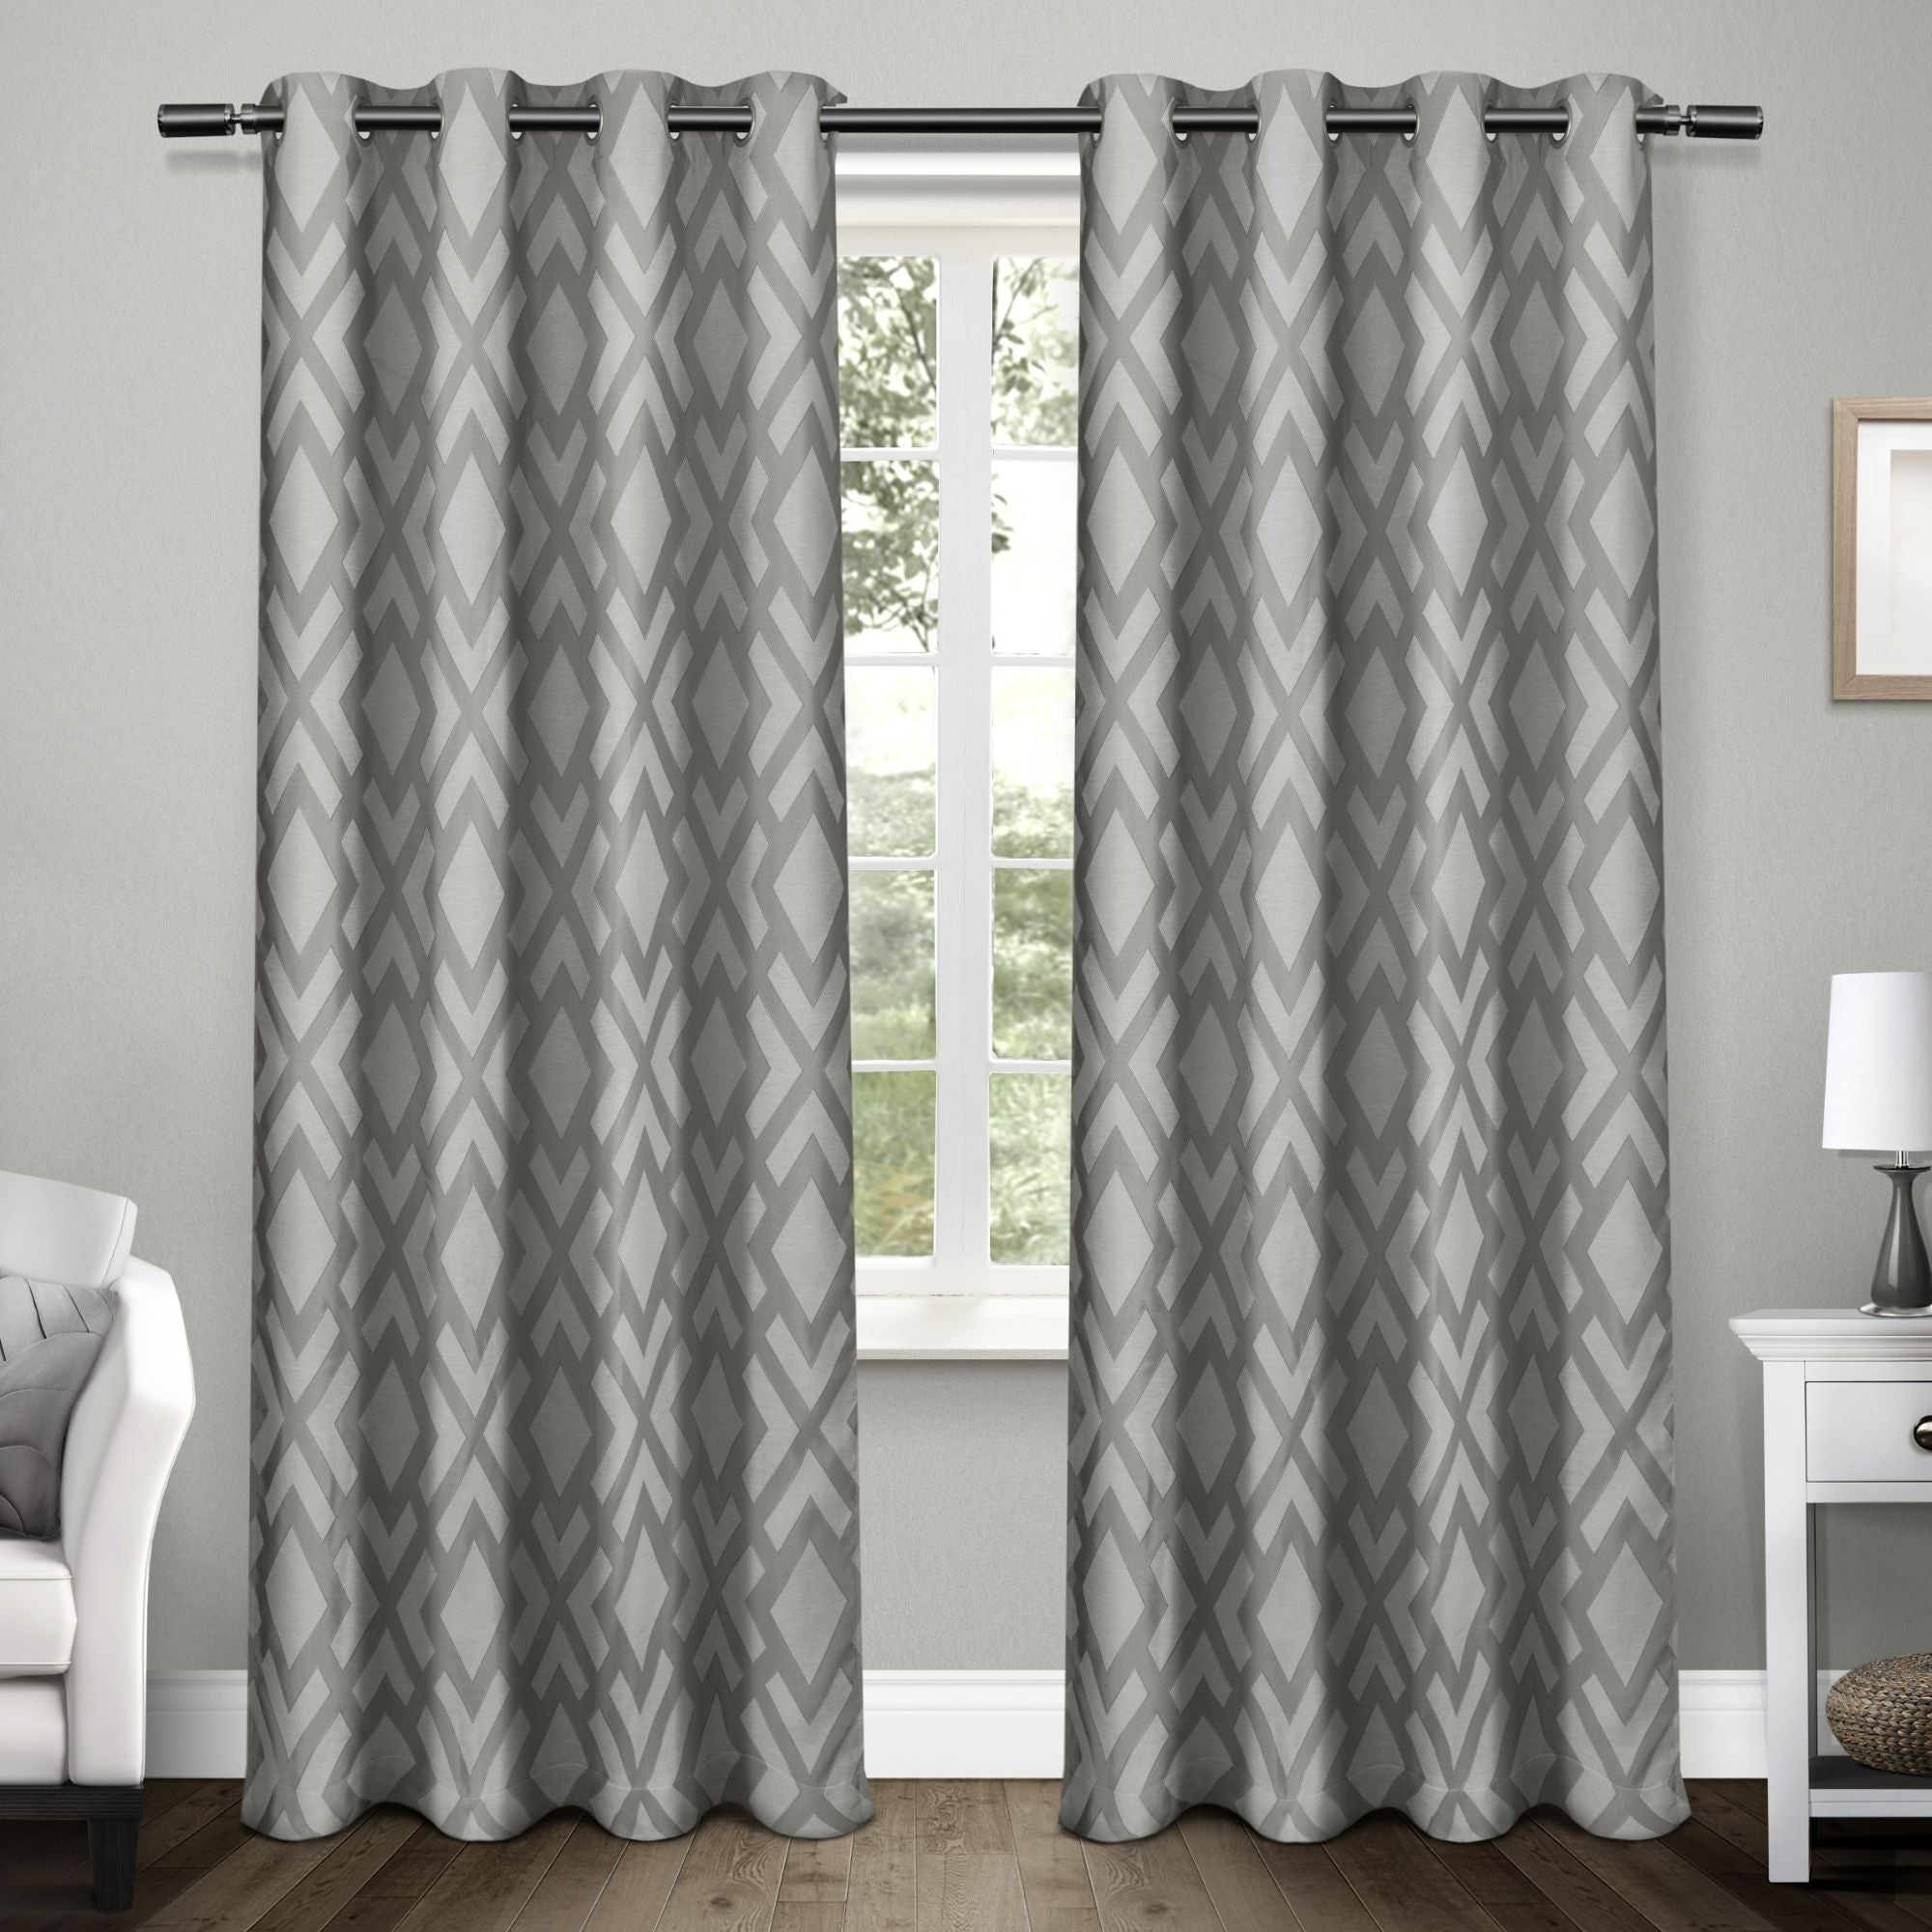 Ati Home Easton Thermal Woven Blackout Grommet Top Curtain Panel Pair Within Gracewood Hollow Tucakovic Energy Efficient Fabric Blackout Curtains (View 13 of 20)